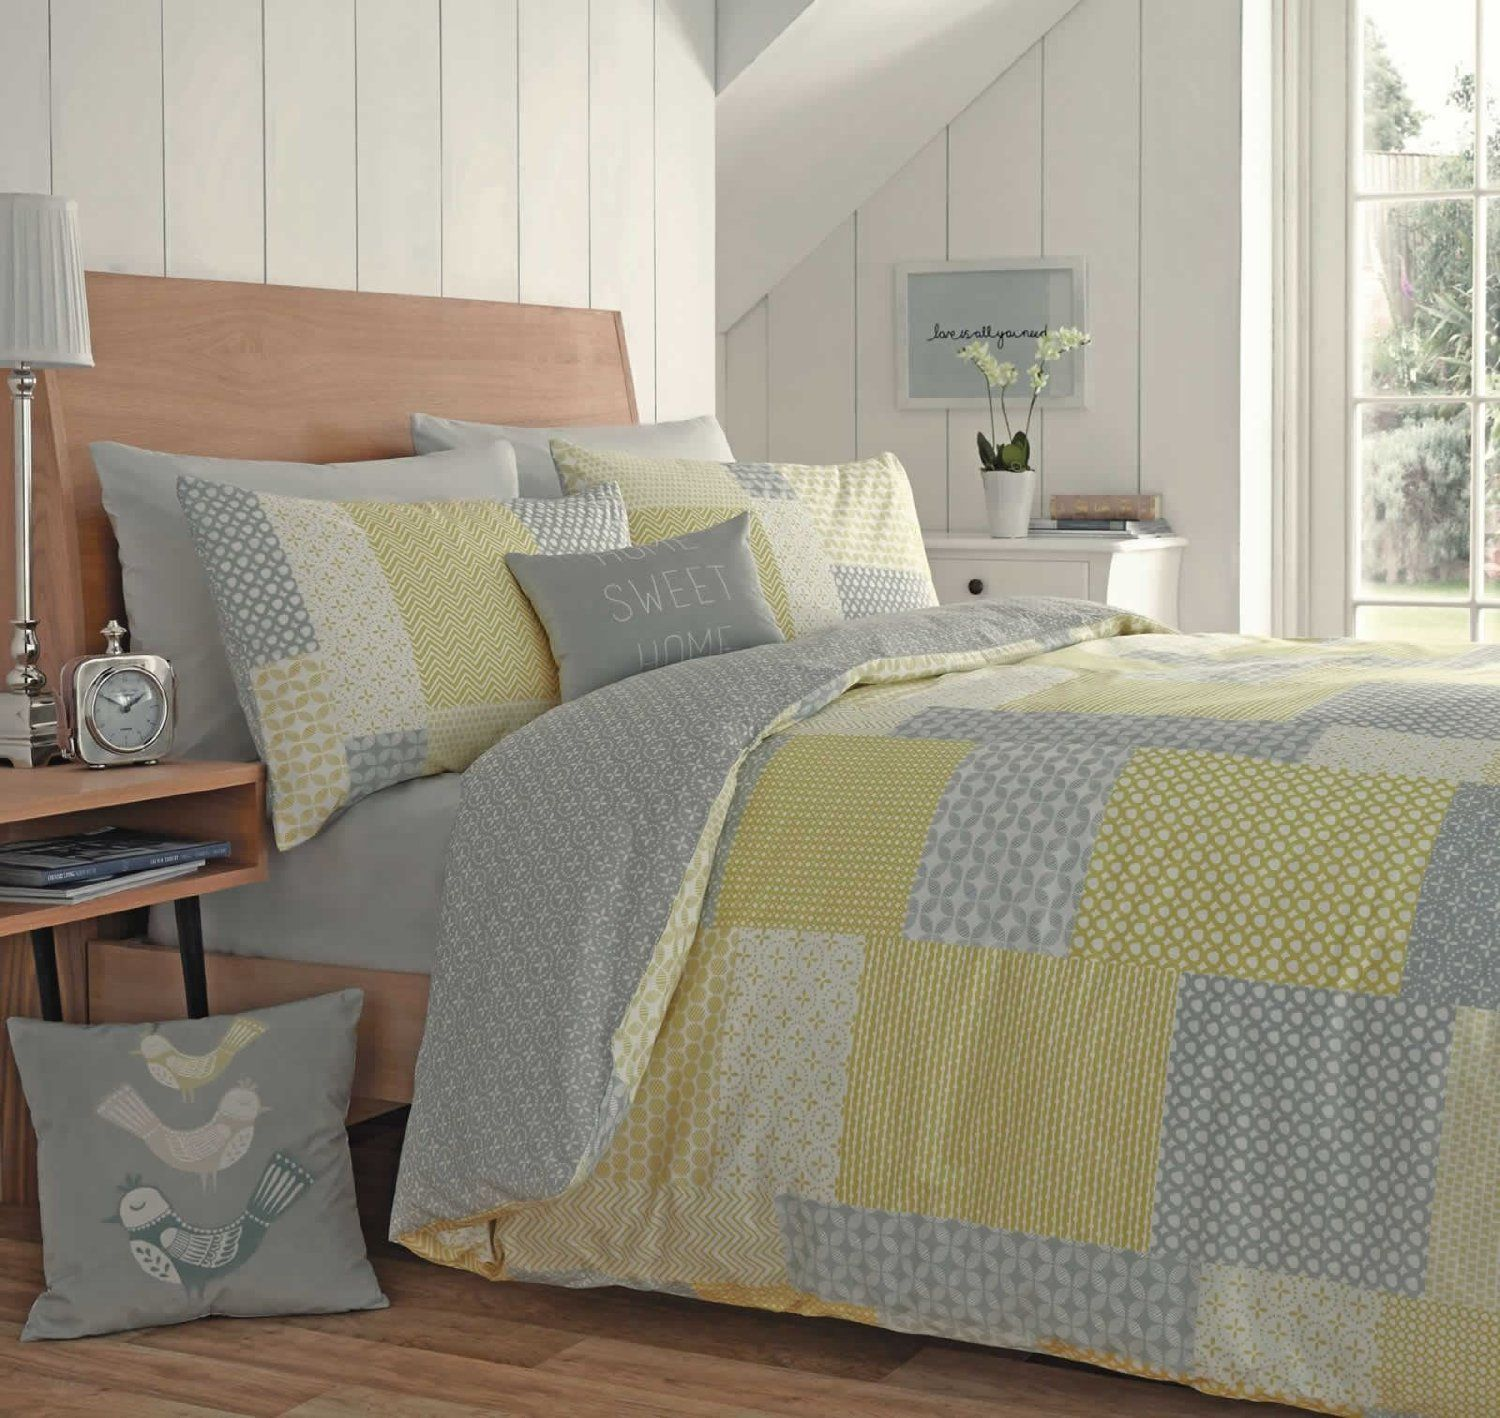 Appletree® Yellow Grey Duvet Cover Patchwork Reversible